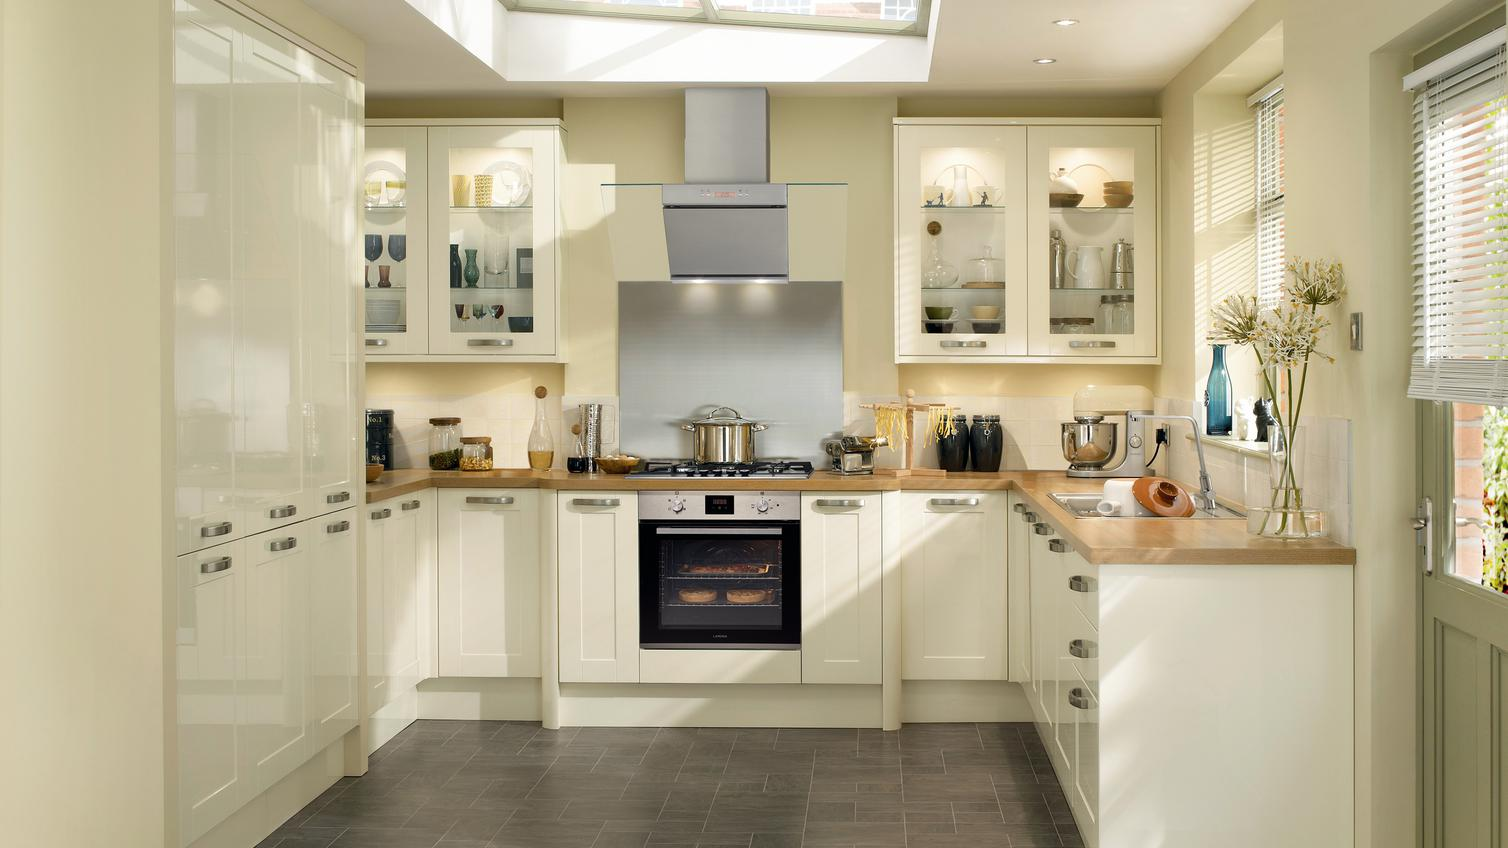 U Shaped Kitchens: Ideas To Inspire You | Howdens